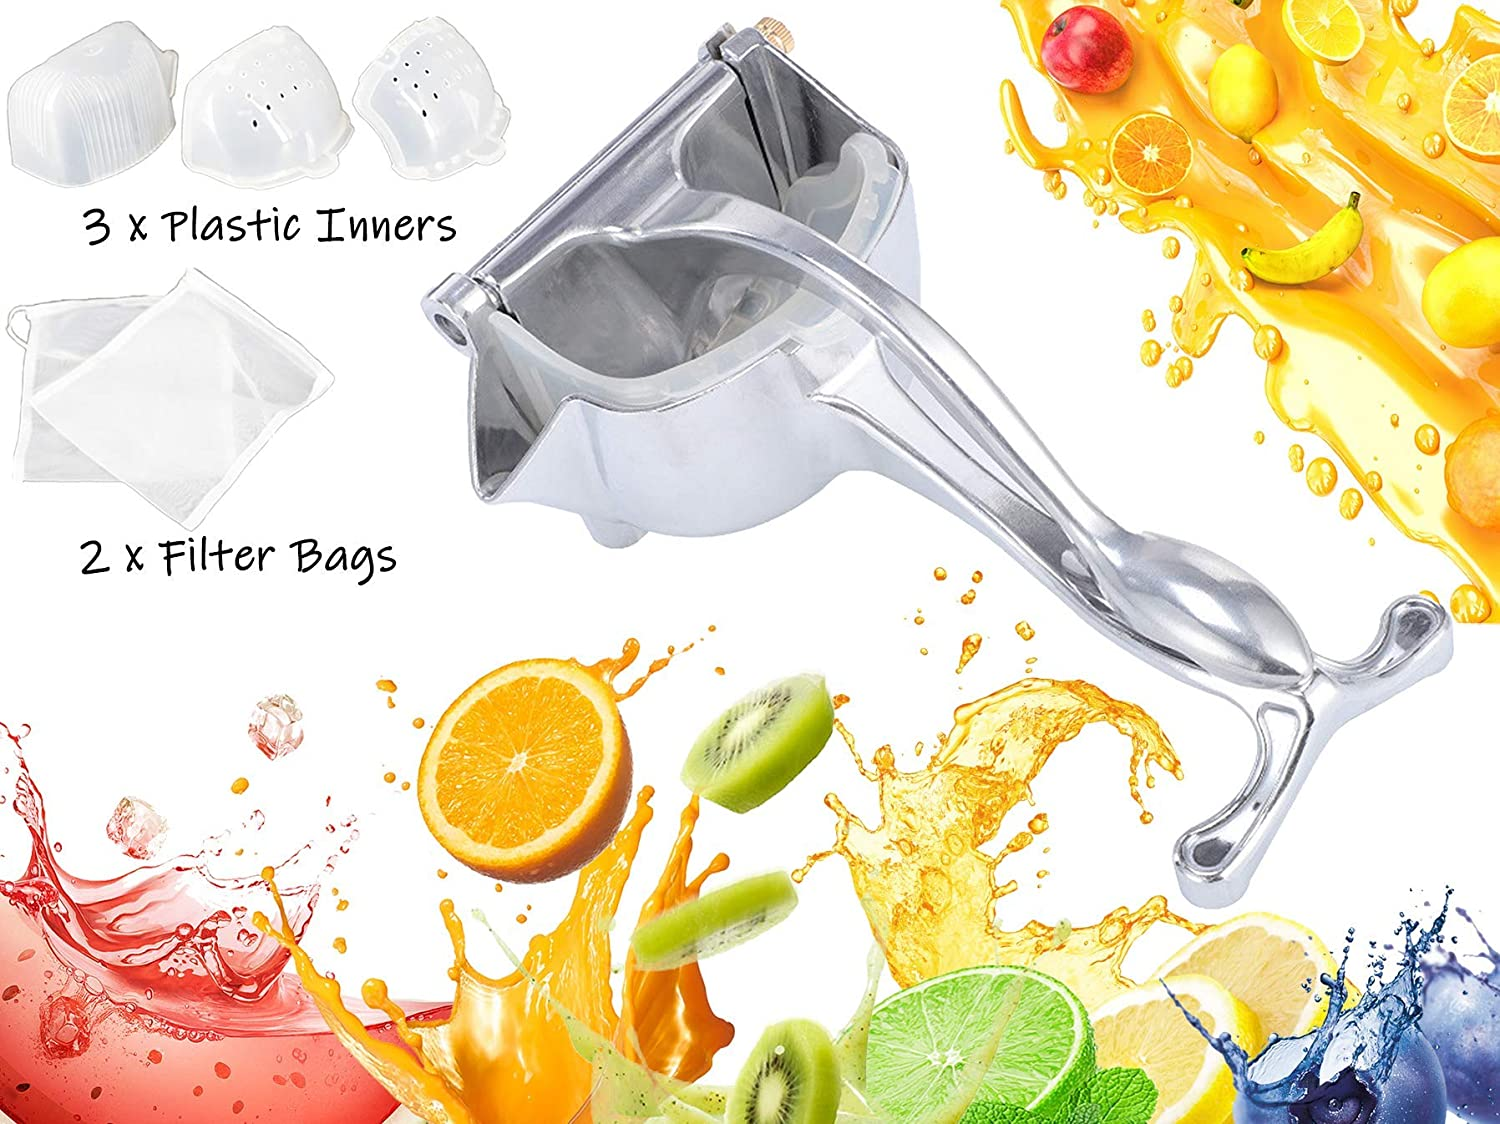 YT Home Orange Citrus Manual Juicer Lemon Lime Hand Squeezer Handheld Press Premium Quality Sturdy Metal Alloy Heavy Duty for Party Cocktail Drinks Mocktail